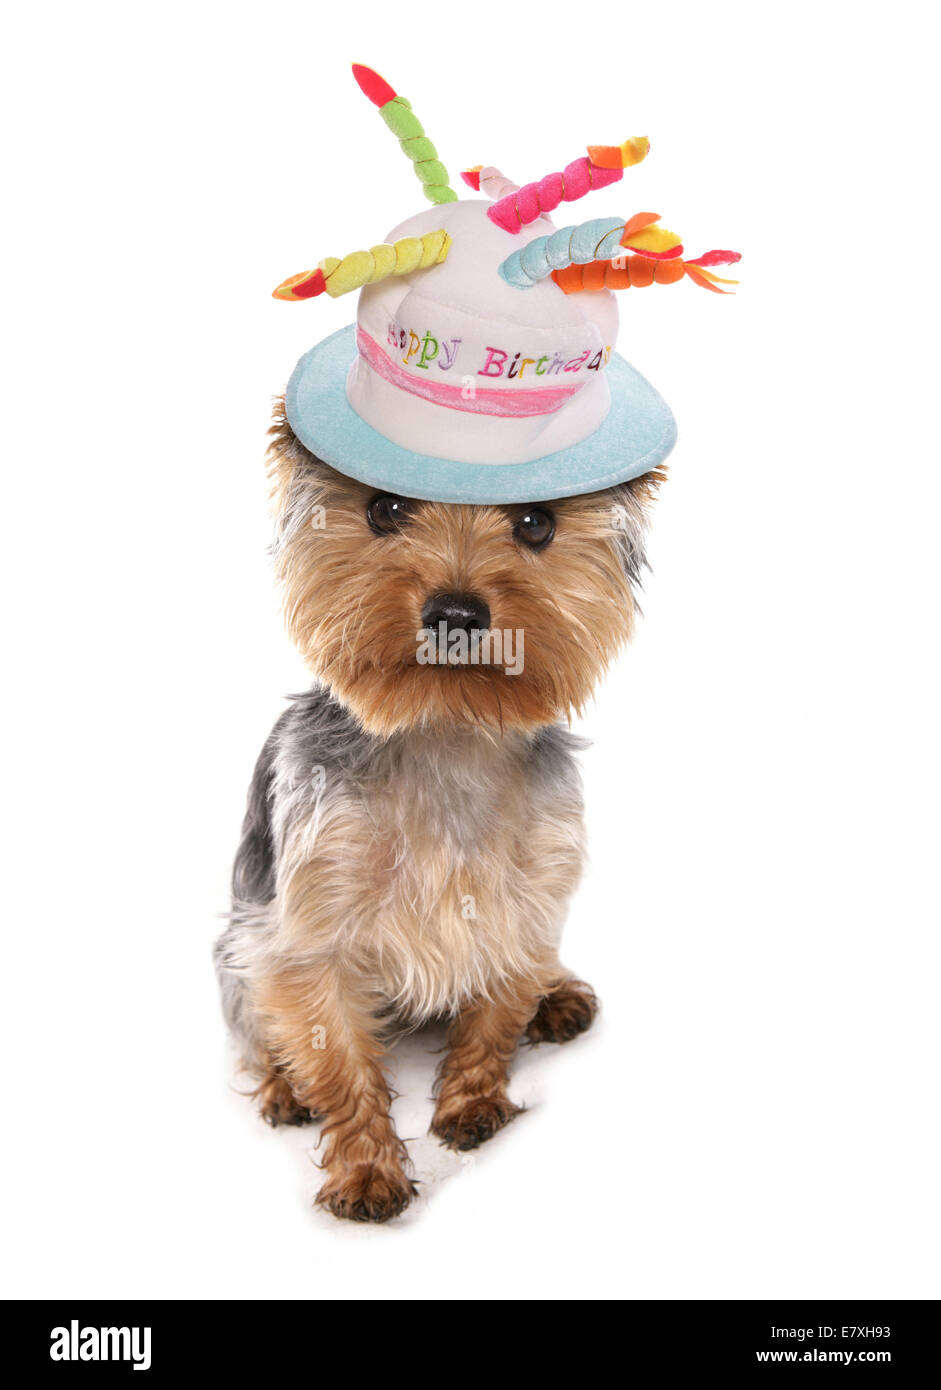 Yorkshire Terrier Wearing Happy Birthday Hat Stock Photo